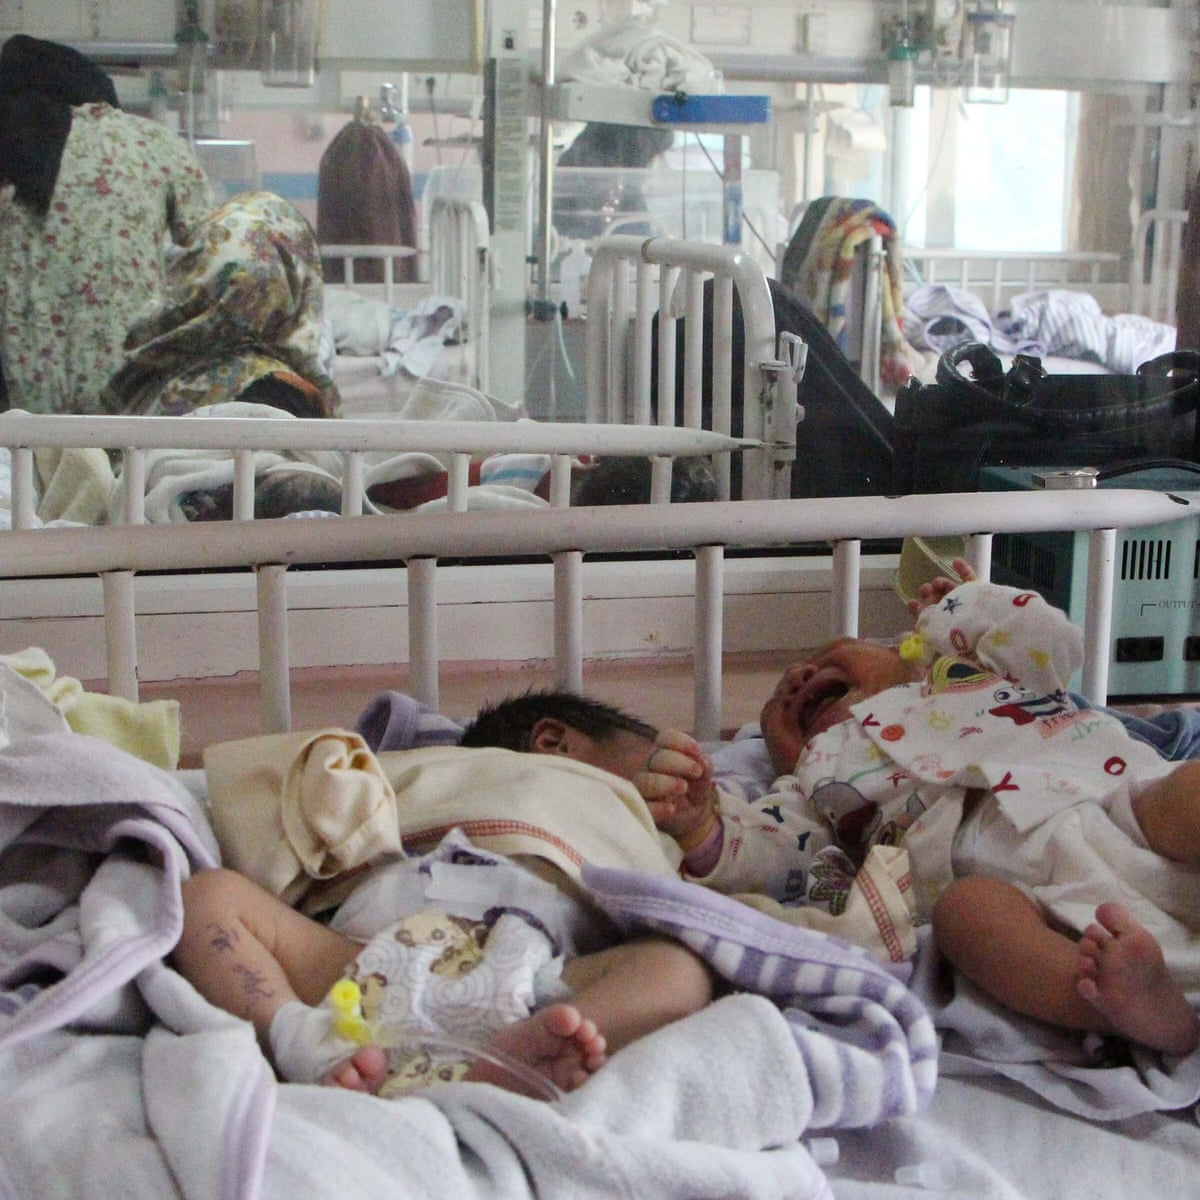 Baby born during Kabul hospital attack survived, charity says